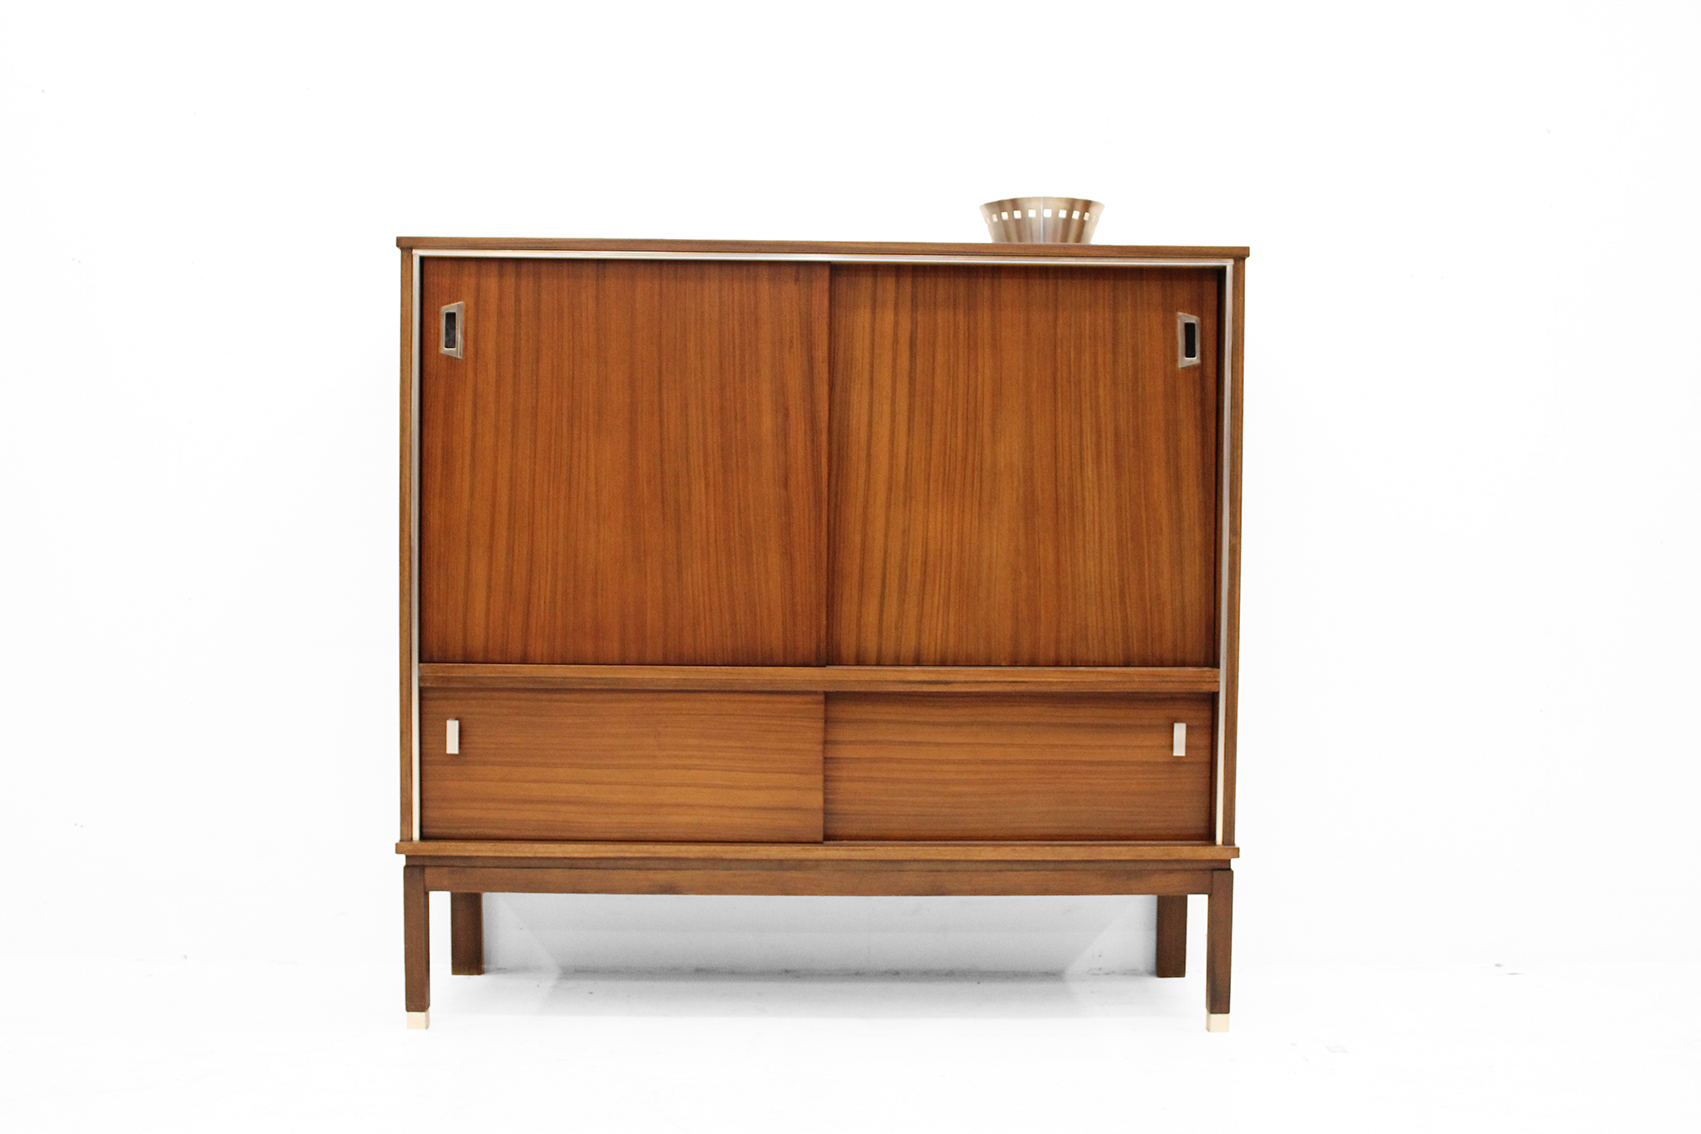 design barcabinet in indian rosewood